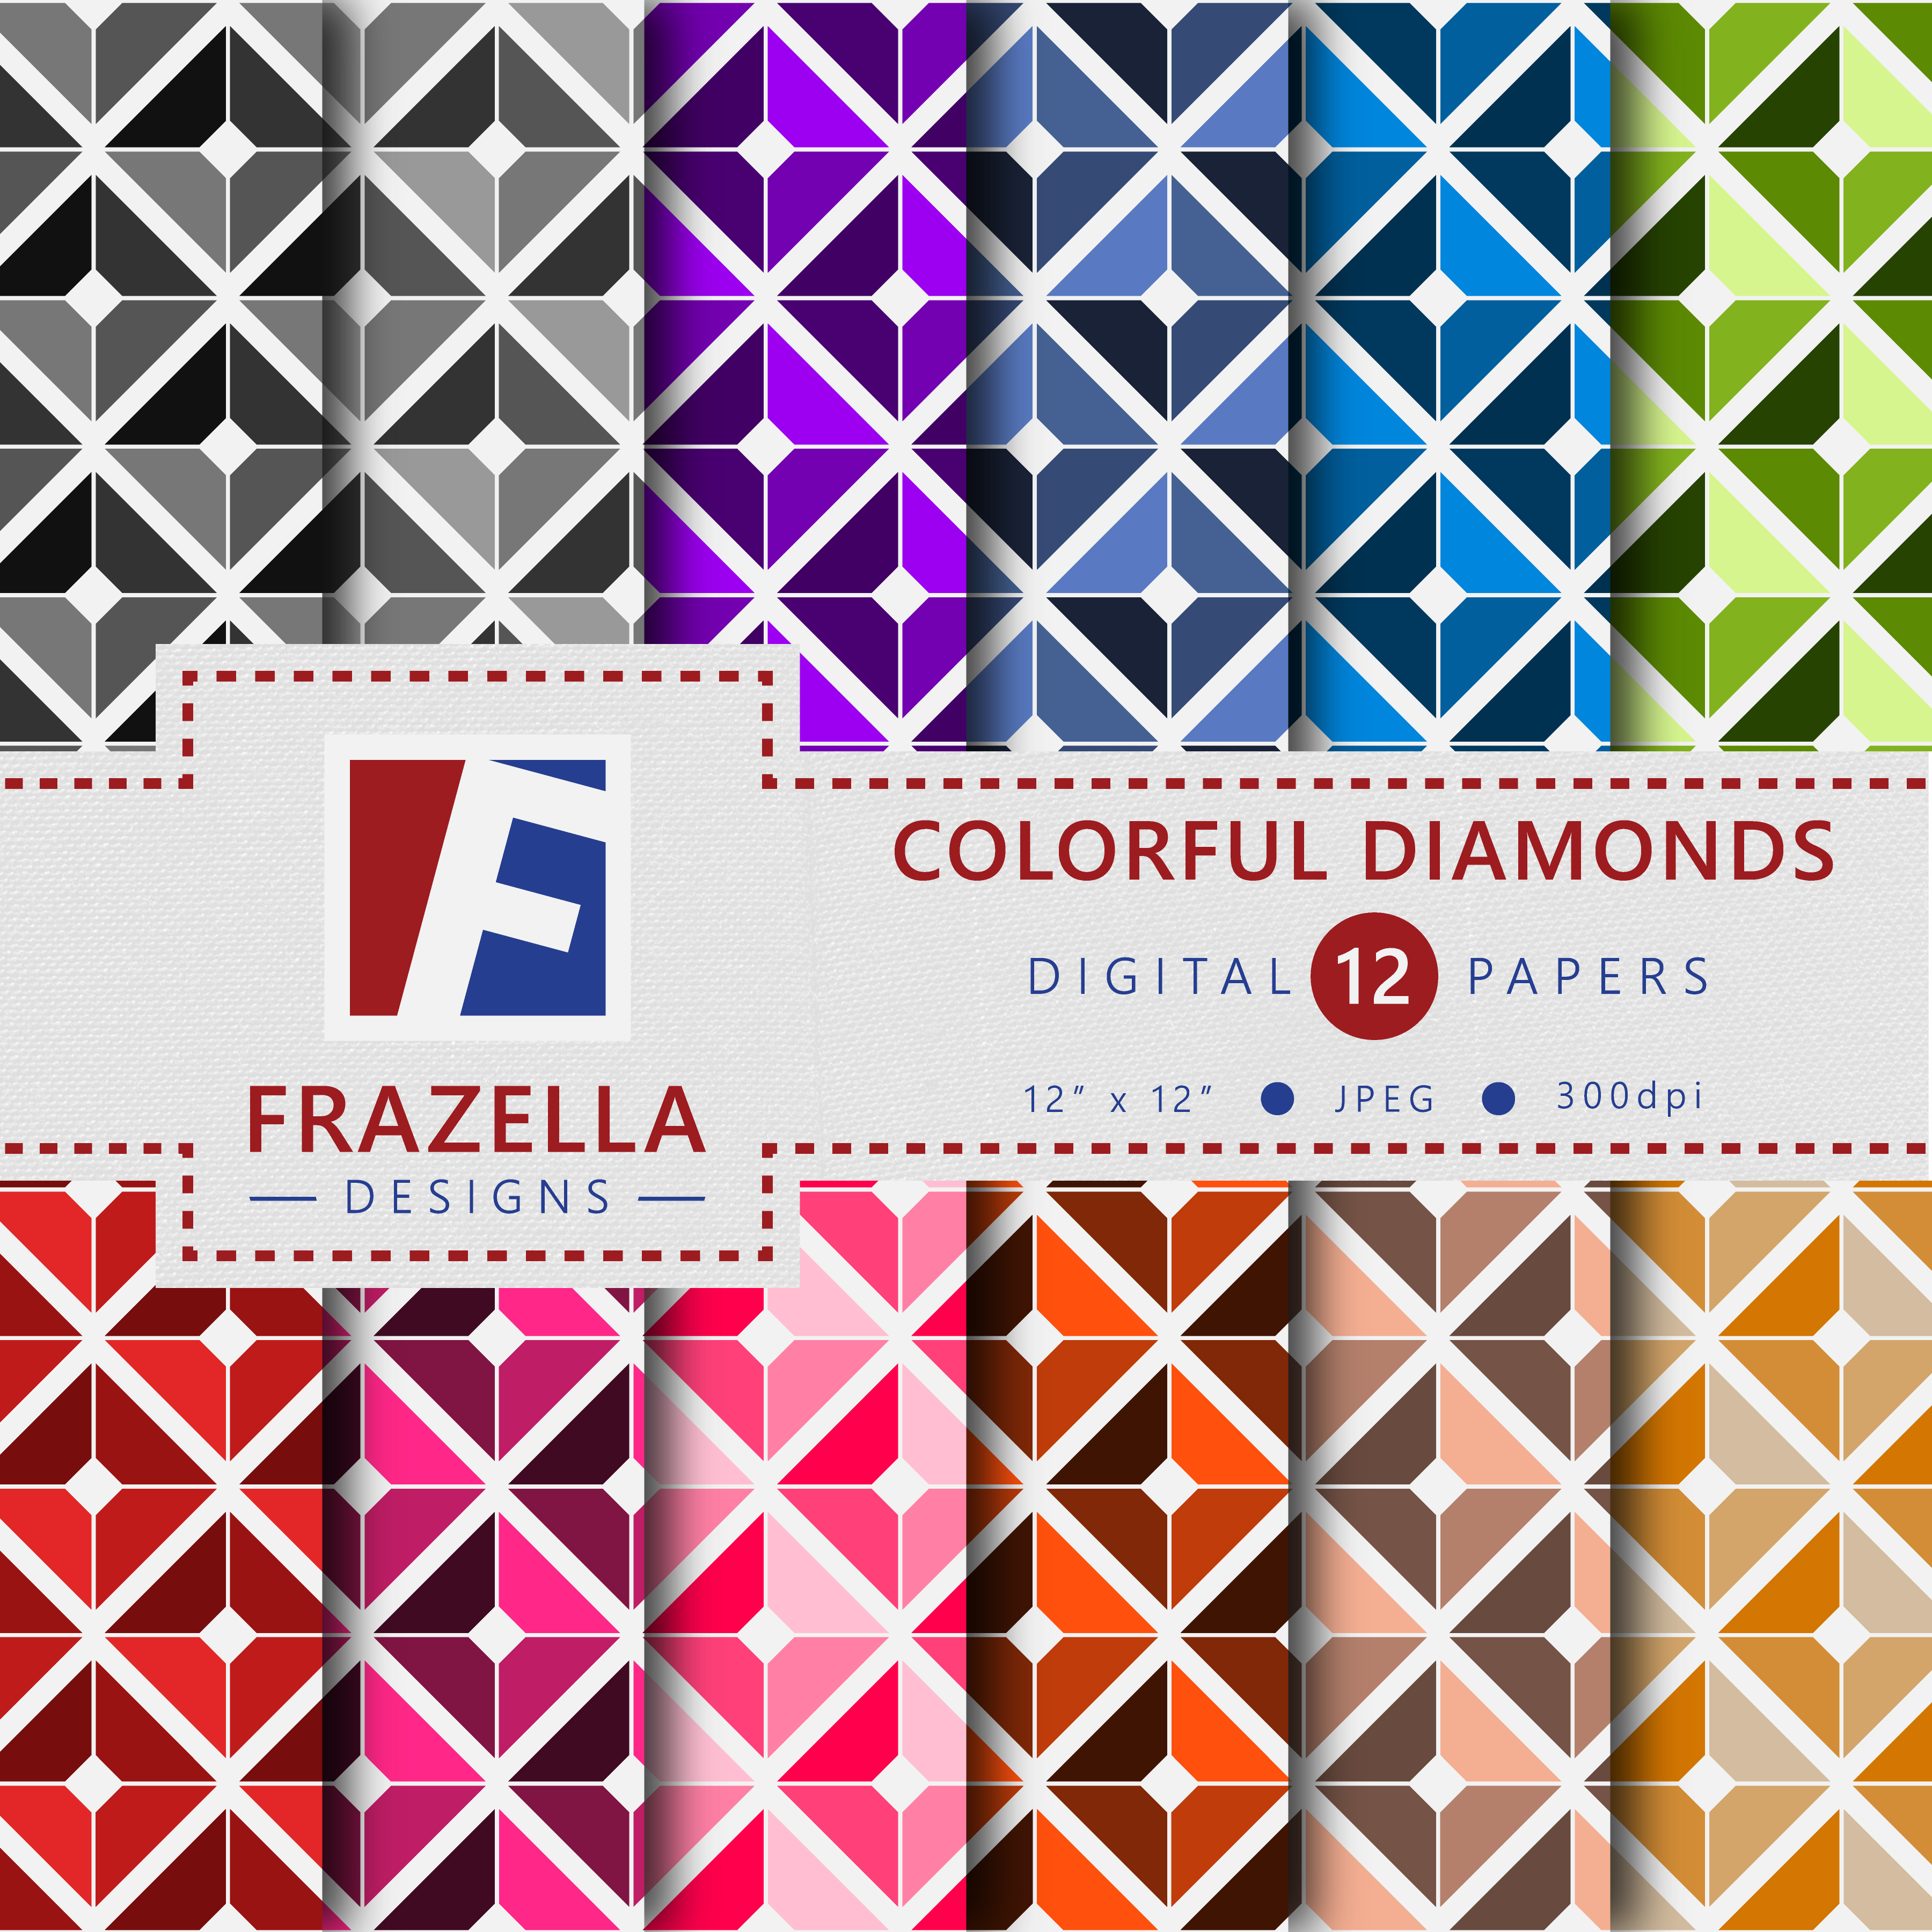 Download Free Colorful Diamonds Digital Paper Collection Graphic By Frazella for Cricut Explore, Silhouette and other cutting machines.